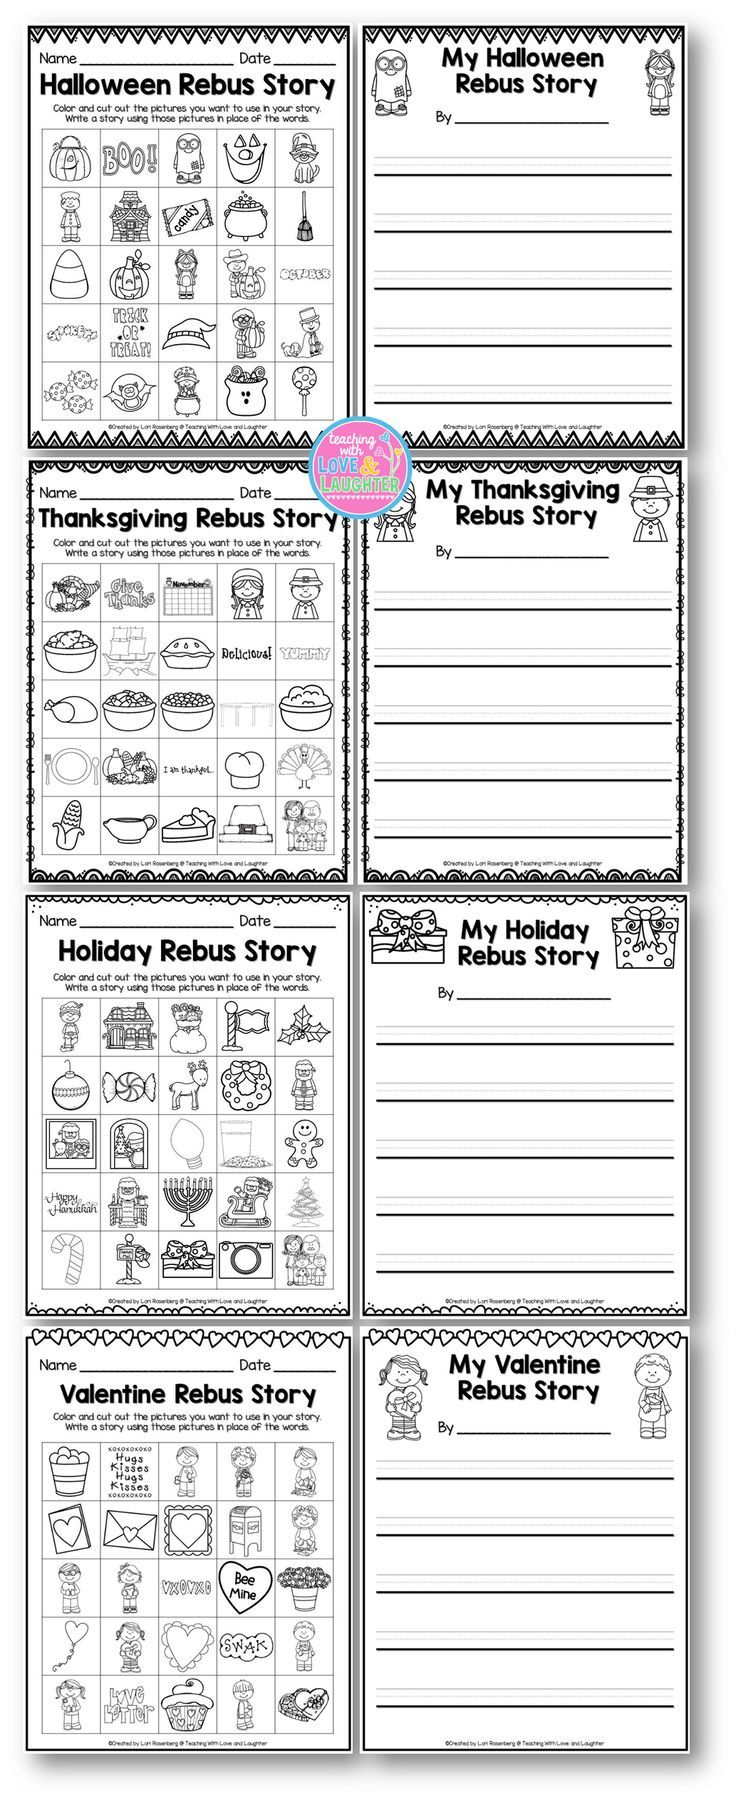 worksheet Rebus Story Worksheets holiday rebus stories students create a story using words and pictures an example is